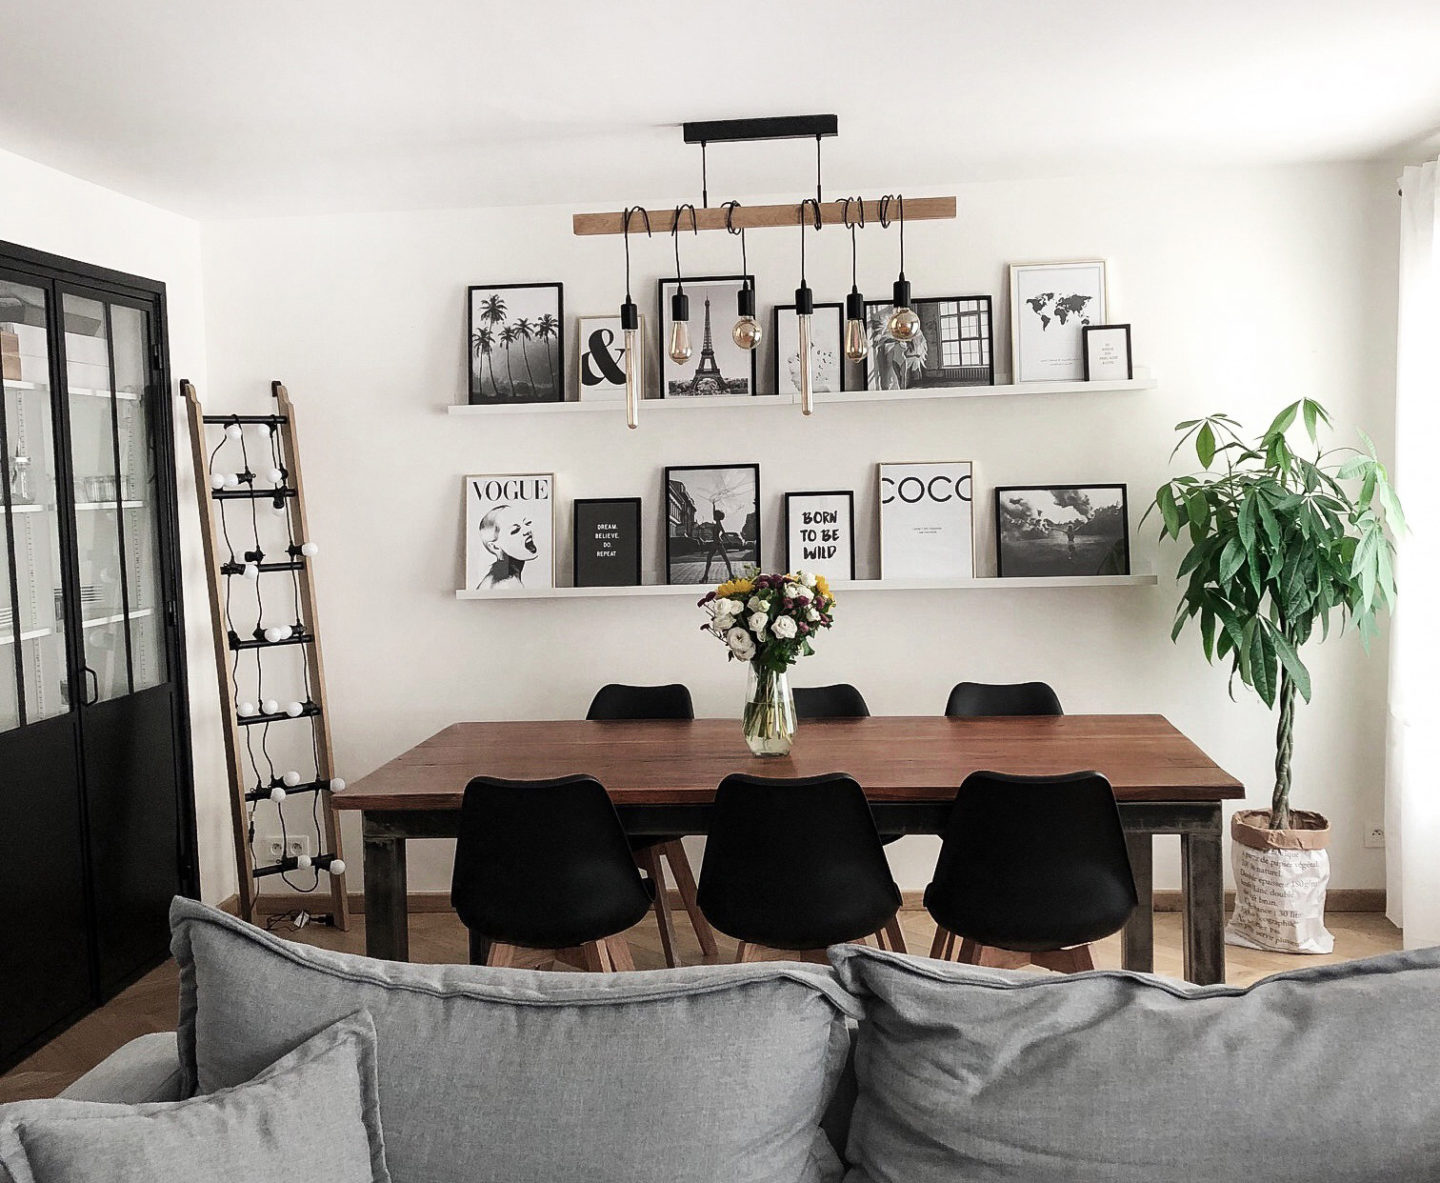 blog deco salle manger industrielle scandinave. Black Bedroom Furniture Sets. Home Design Ideas